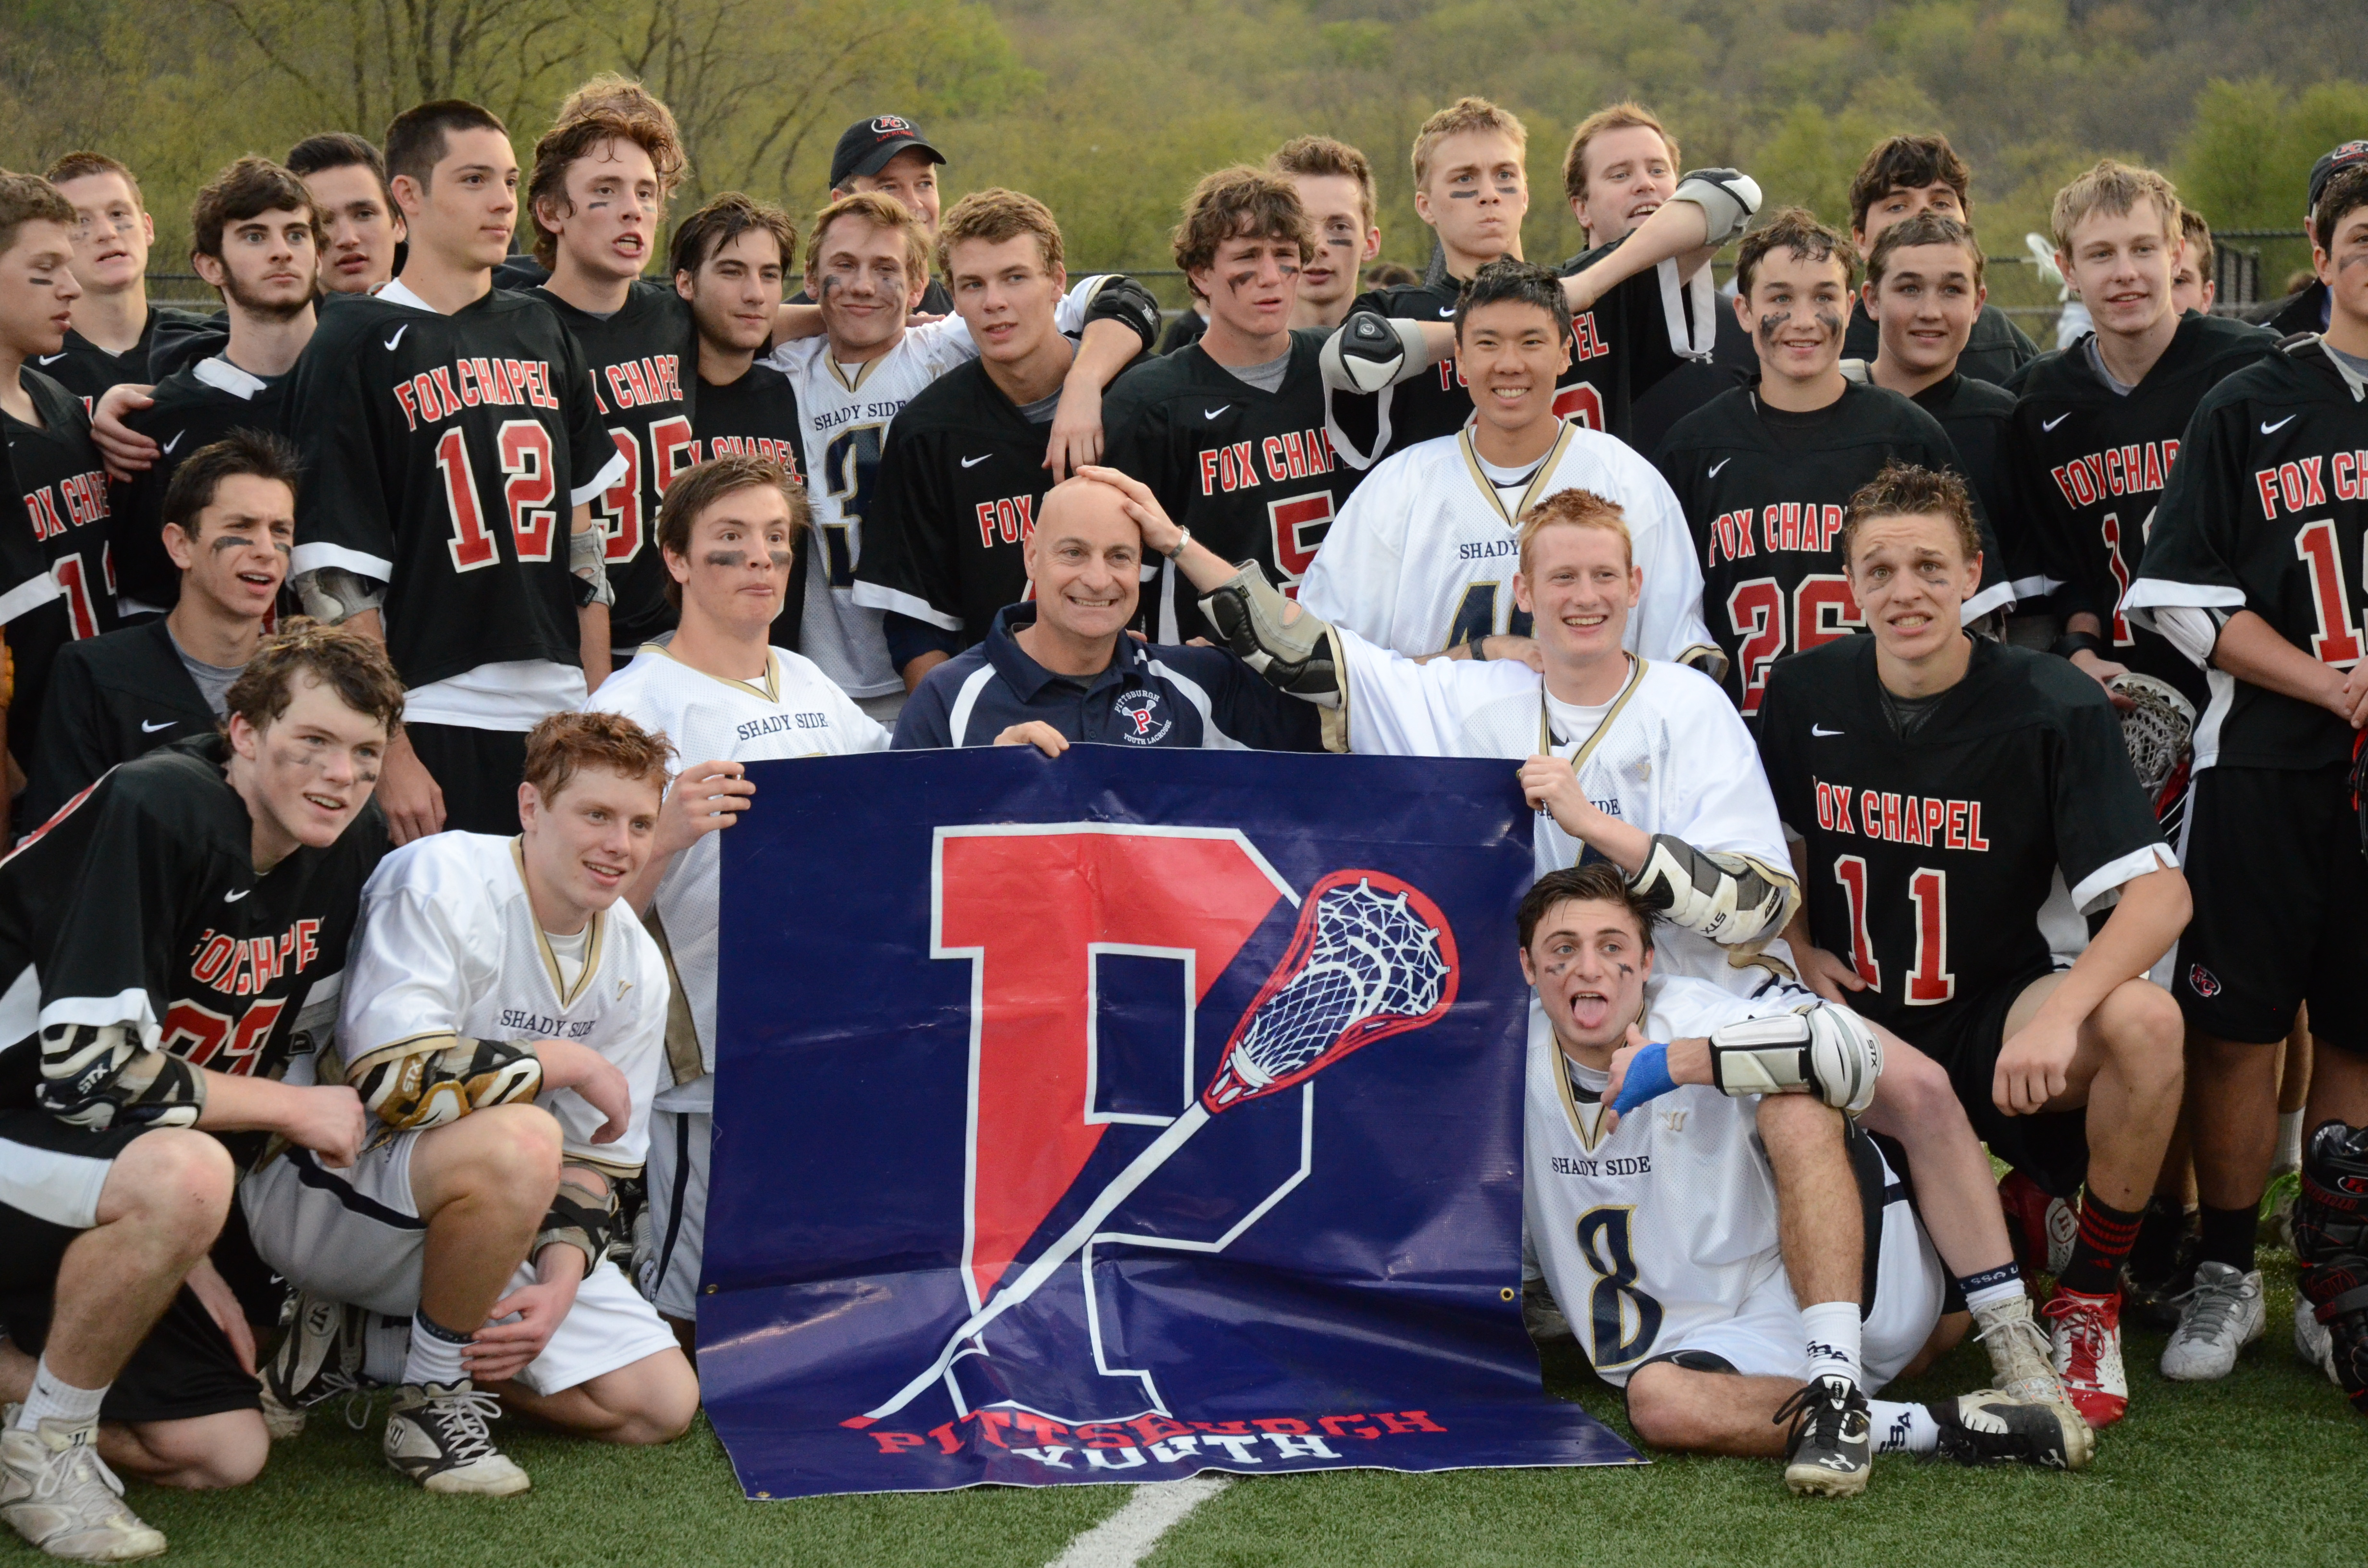 SSA and FC Lacrosse layers with Mike Concordia, May 7, 2014